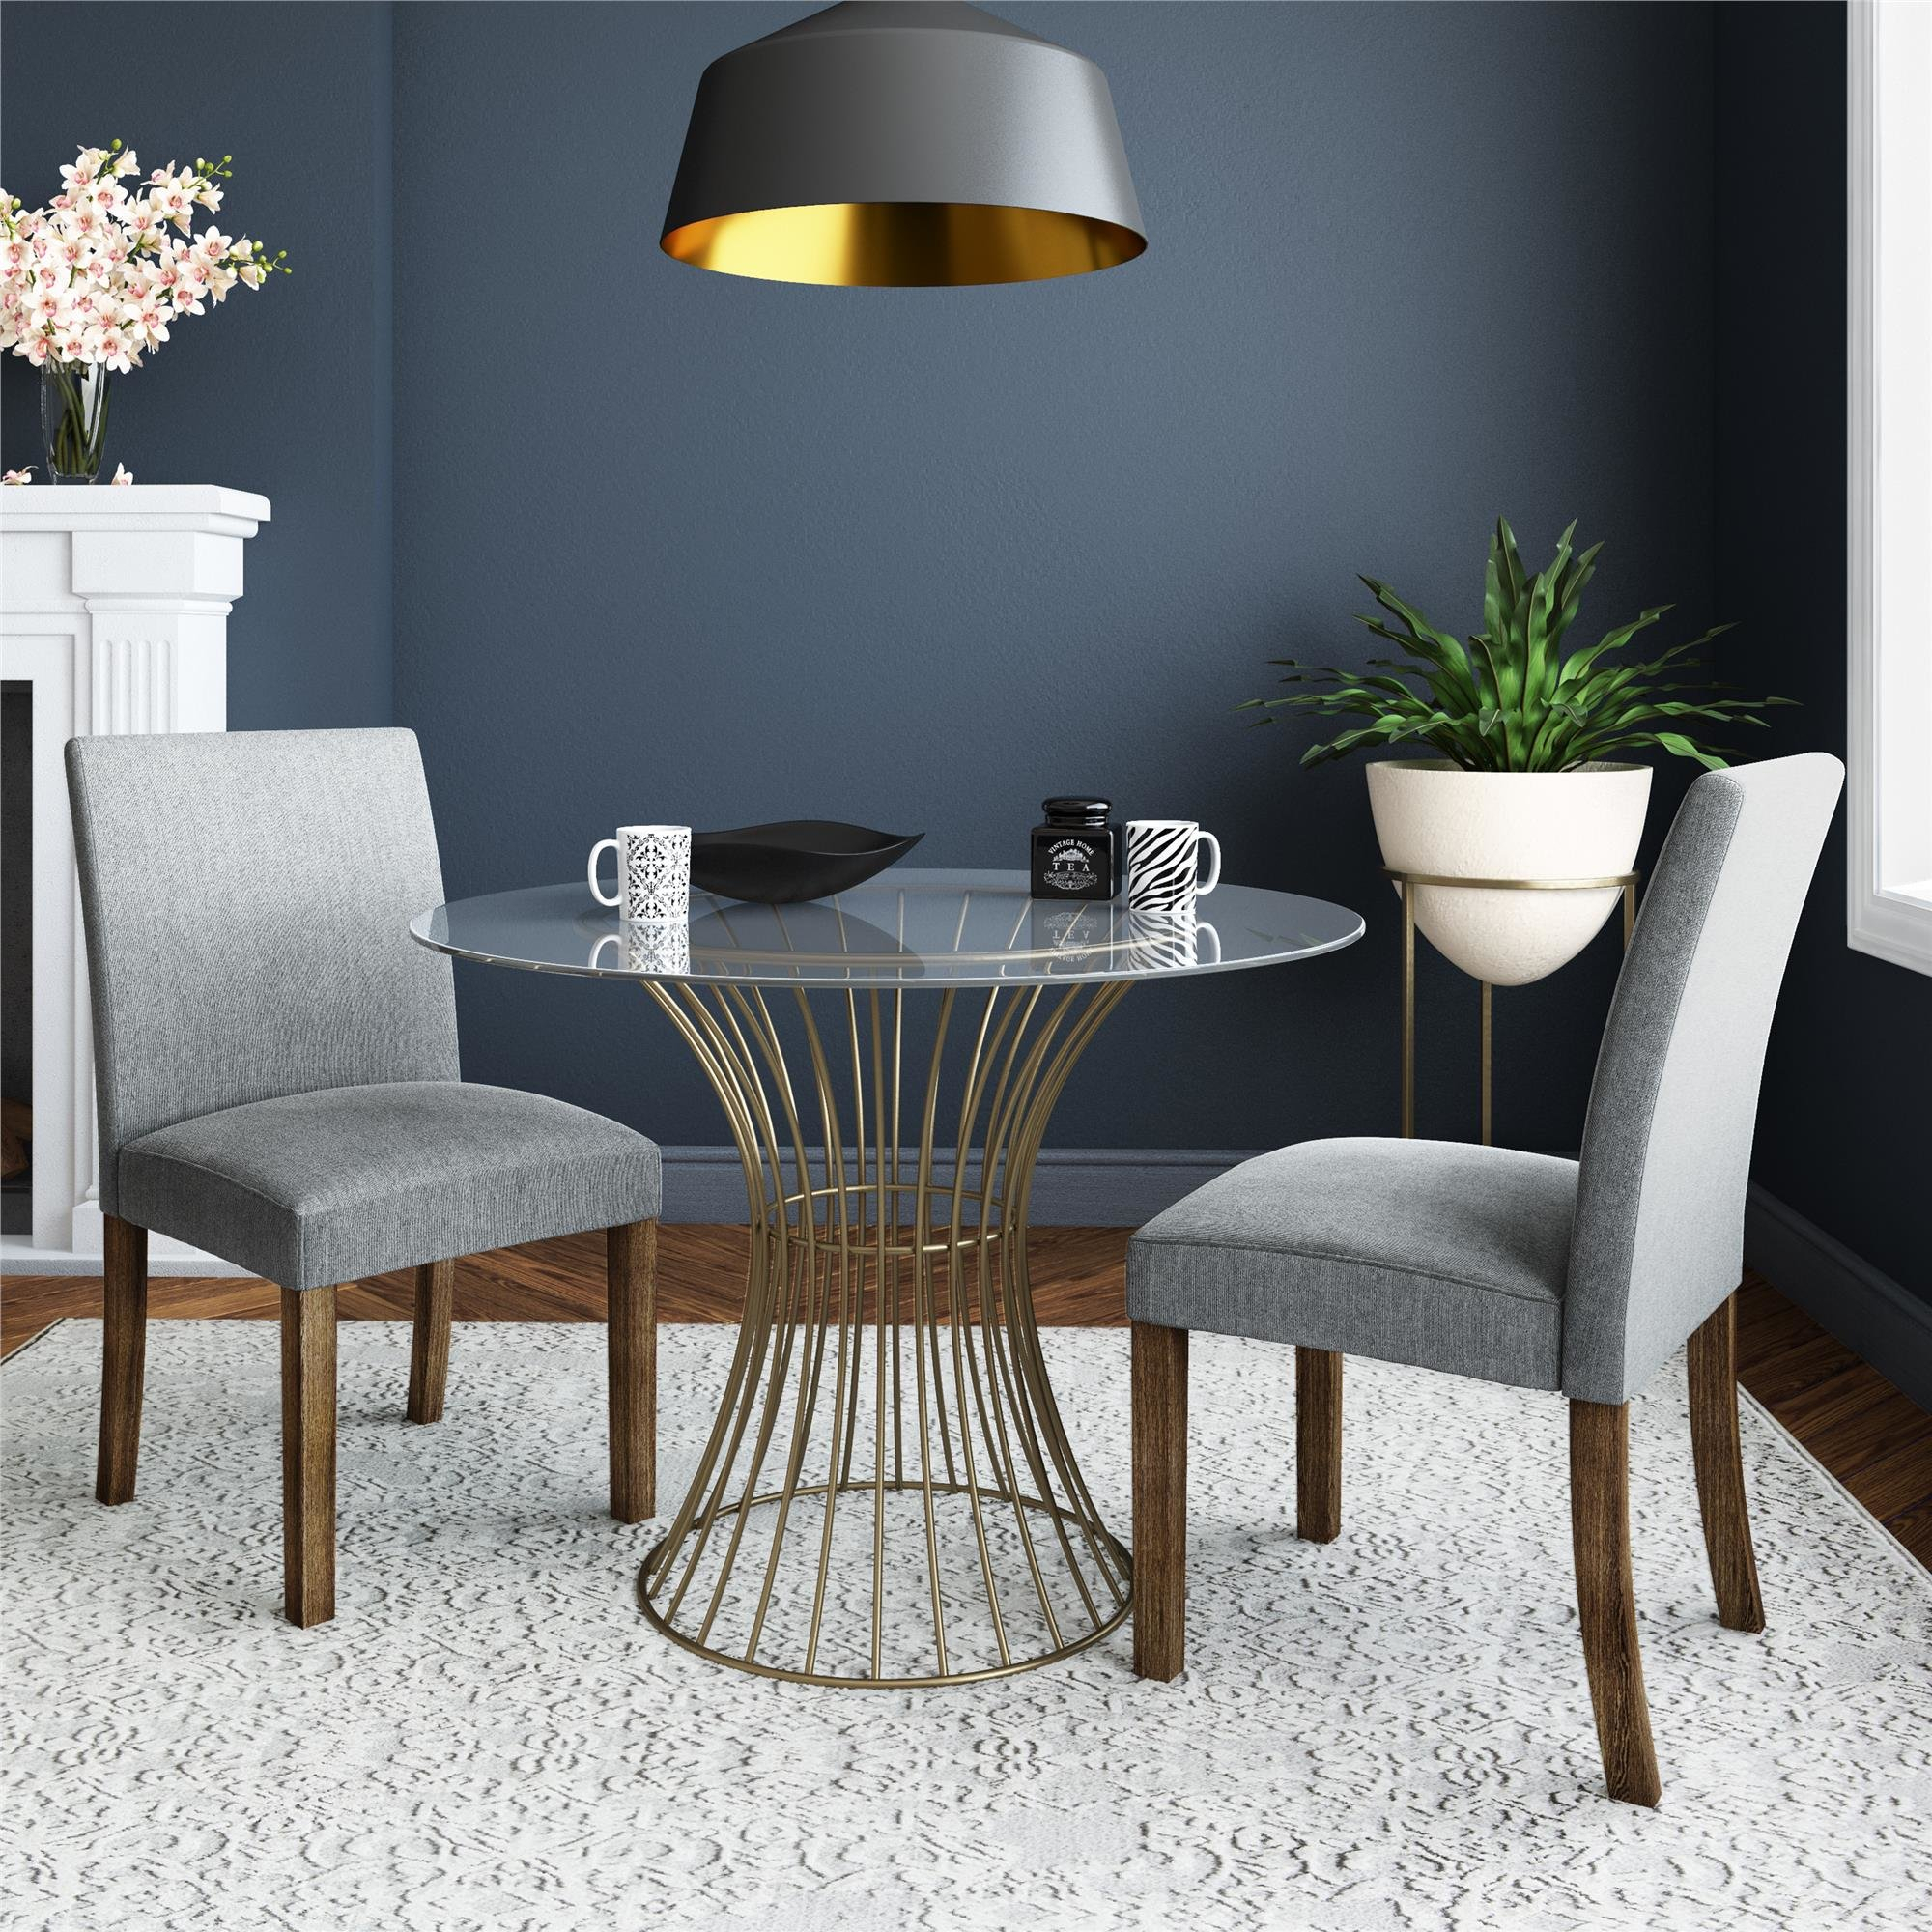 Westwood 3 Piece Dining Set Intended For Most Current 3 Piece Dining Sets (View 12 of 20)